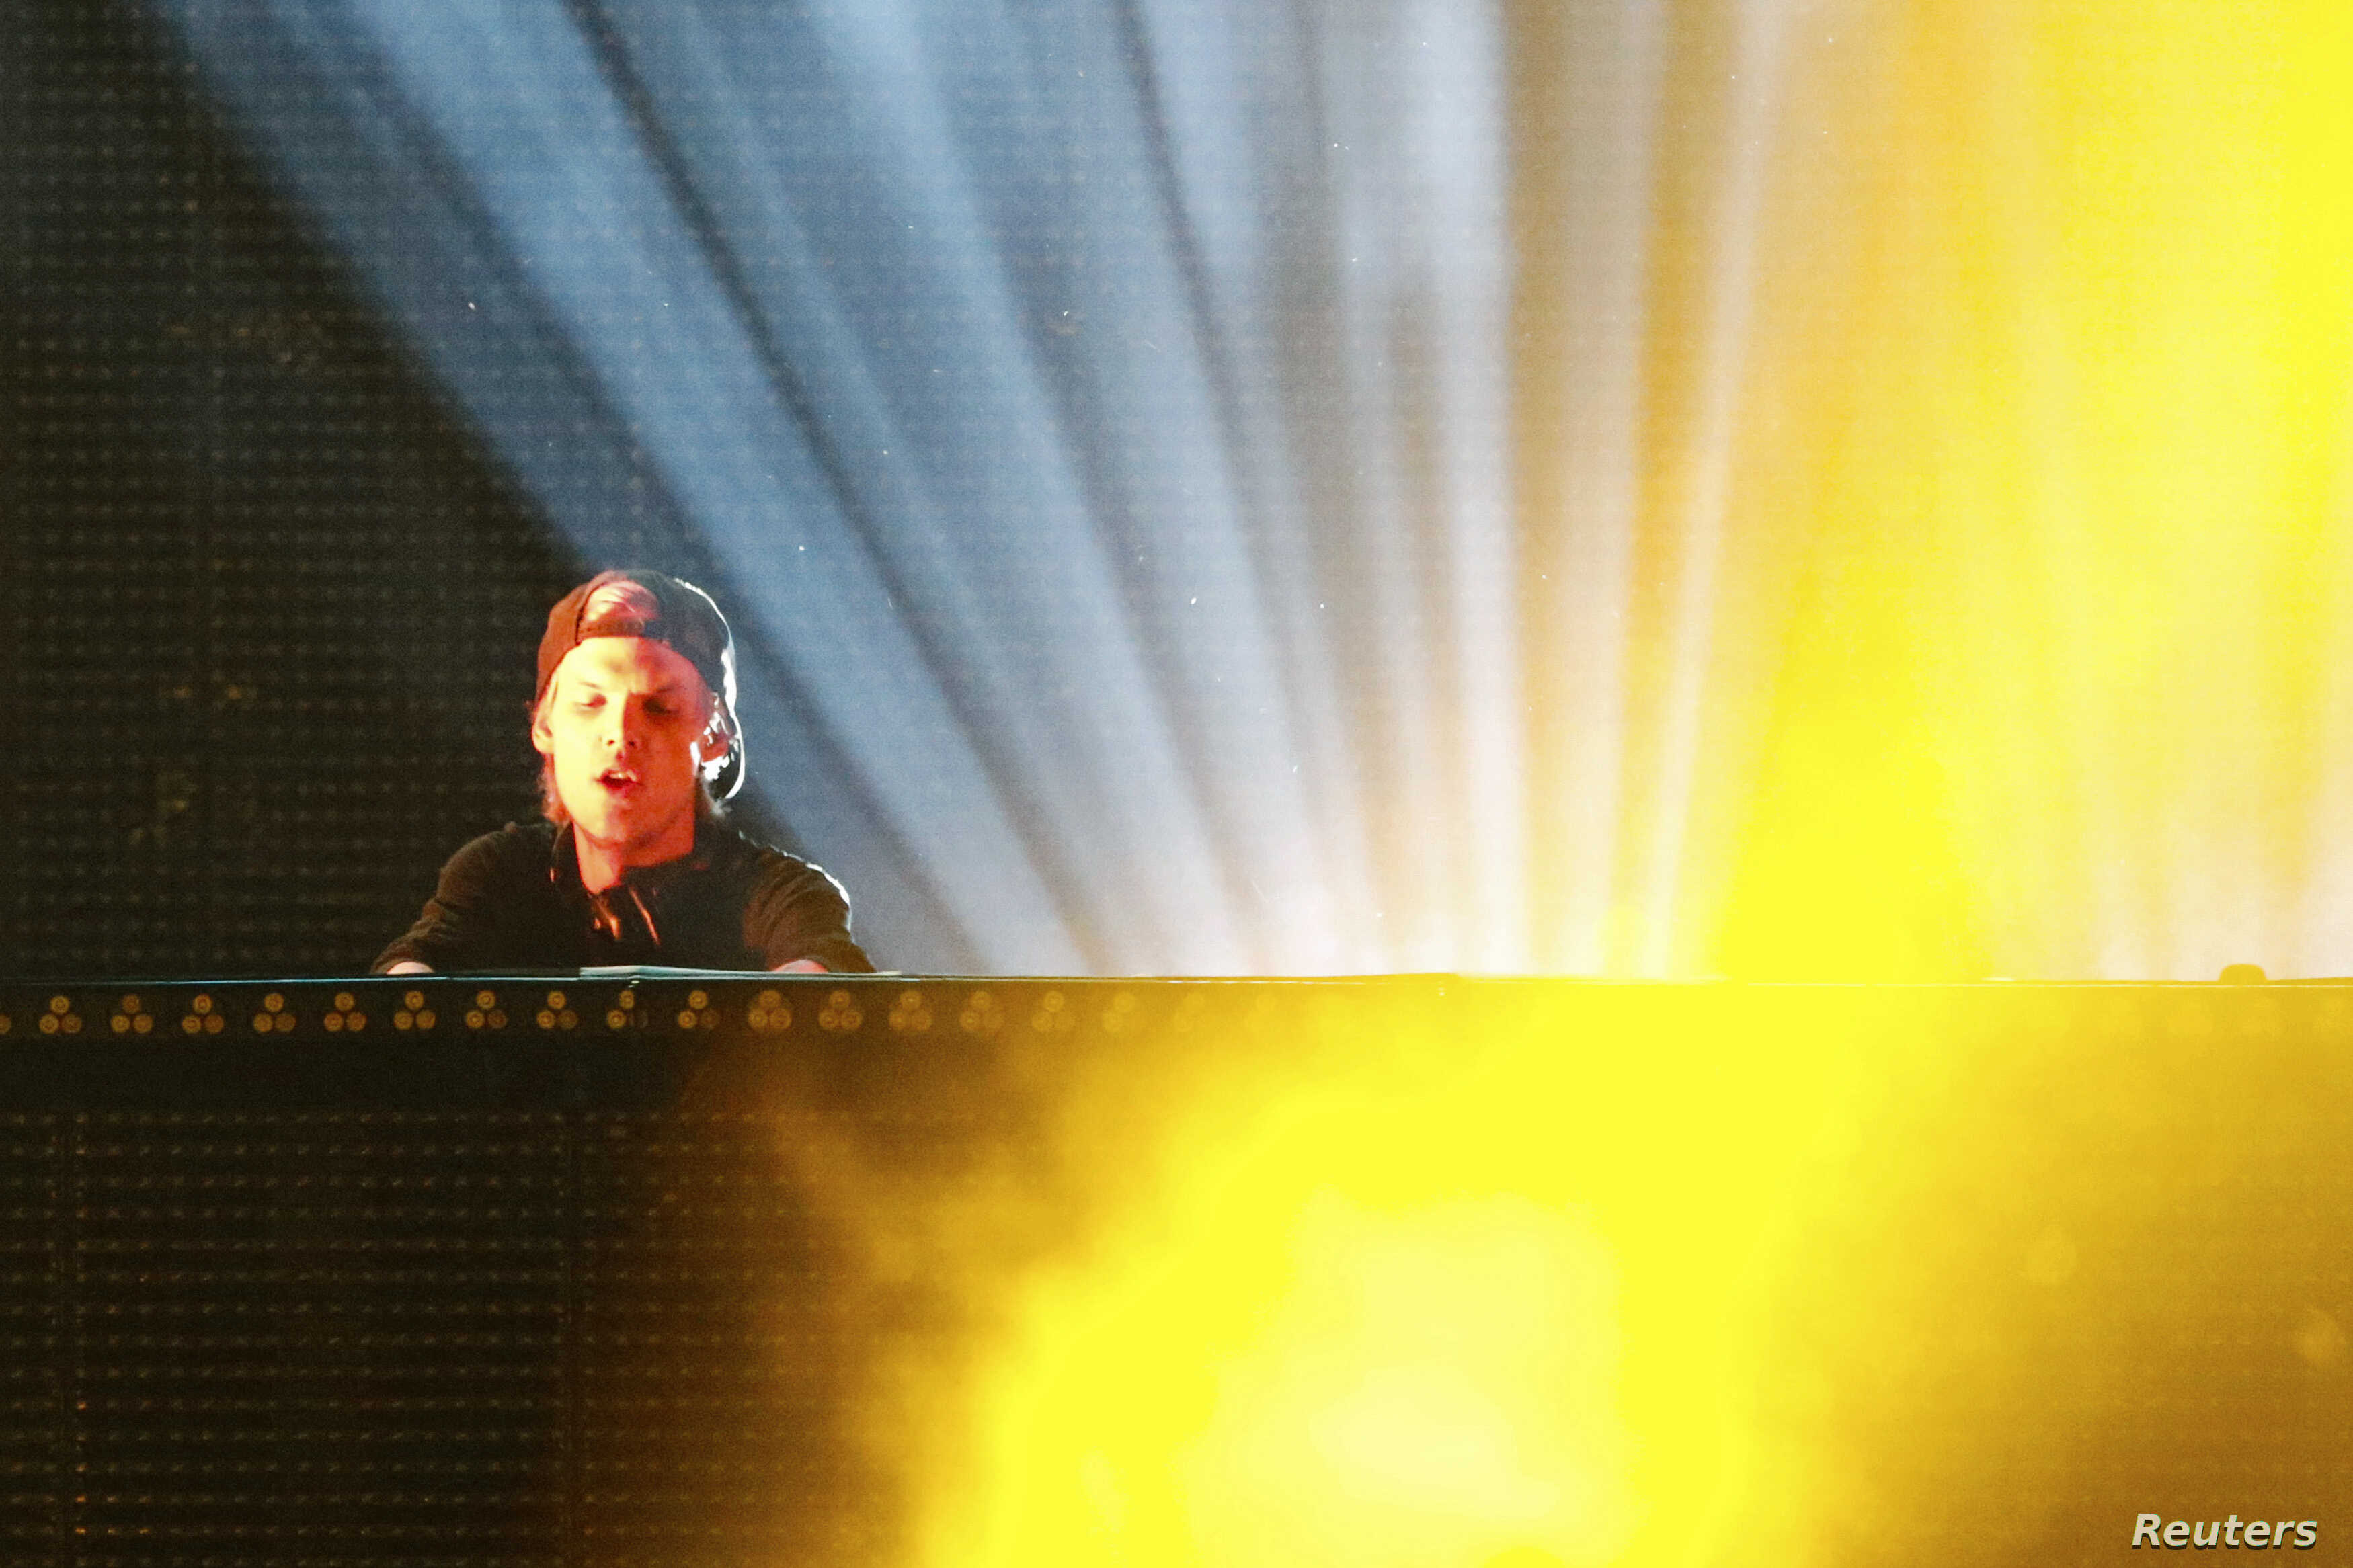 FILE - DJ Avicii performs during a concert at Brooklyn's Barclay's Center in New York, June 28, 2014.